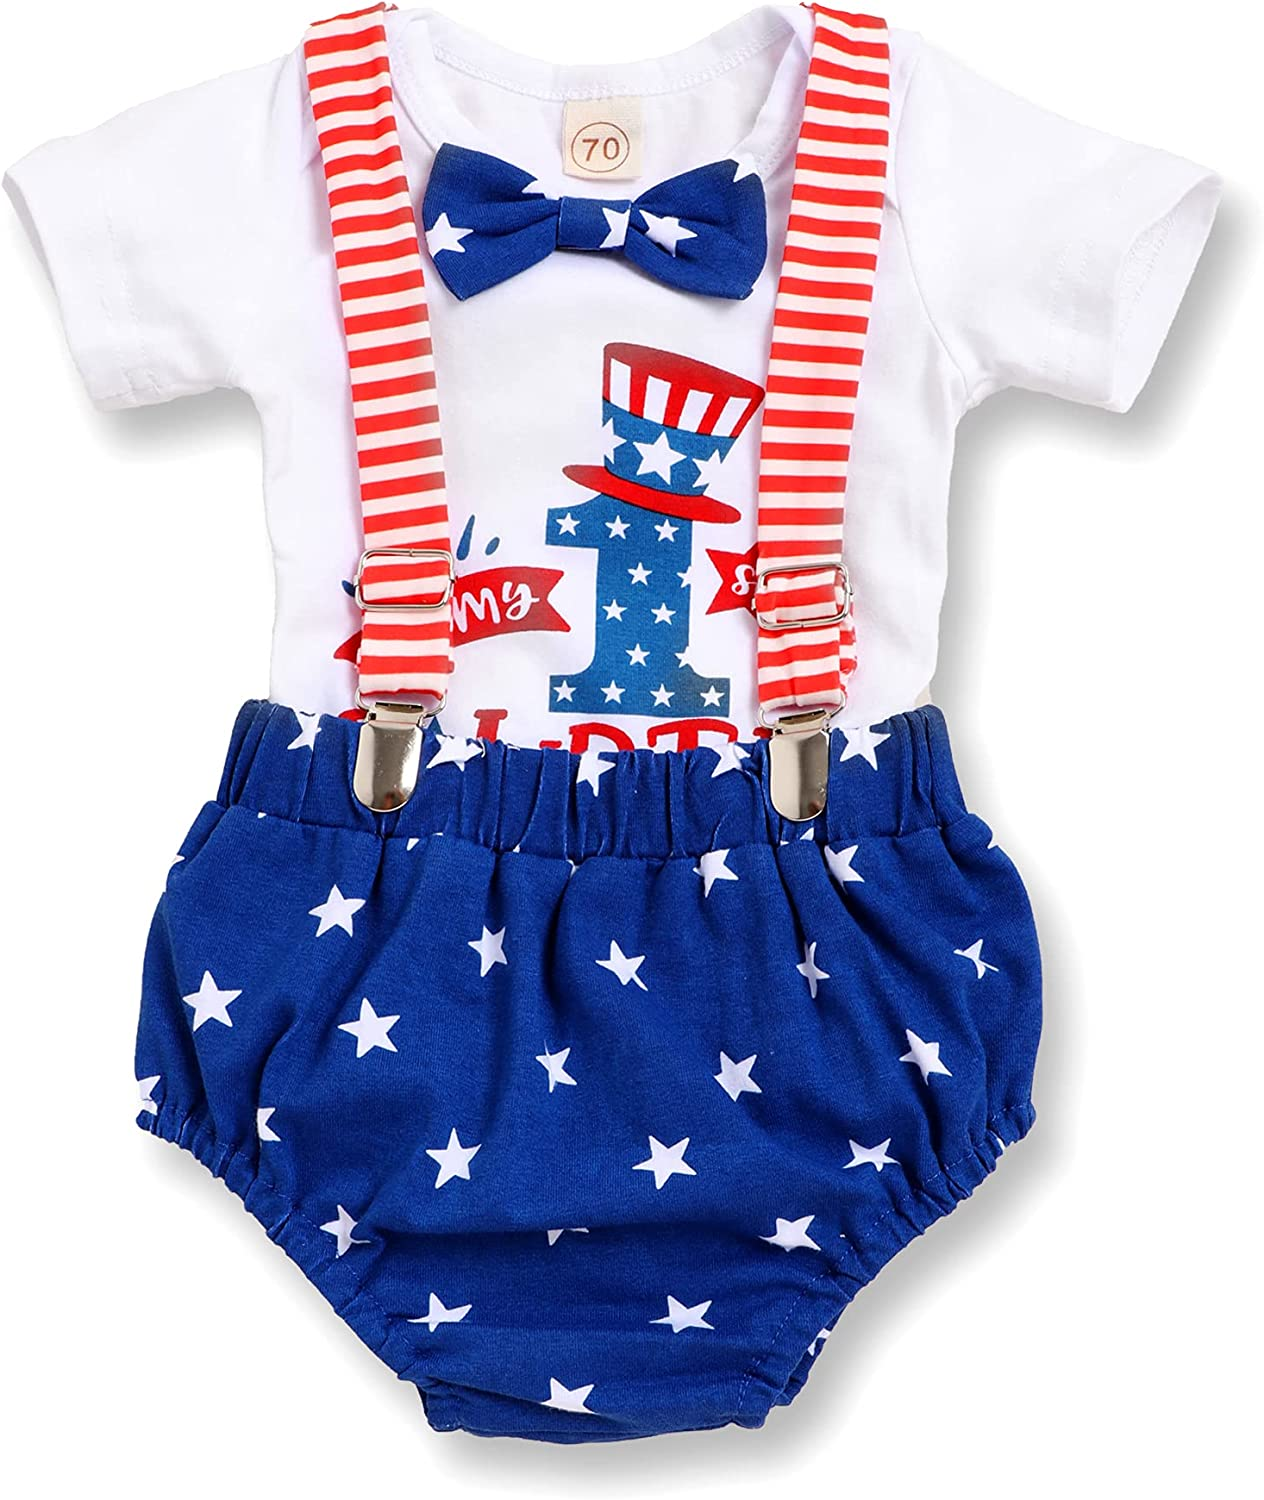 Recabee My 1st 4th of July Baby Boy Outfits Gentleman Romper+Suspender Shorts Overalls Baby Boy 4th of July Clothes